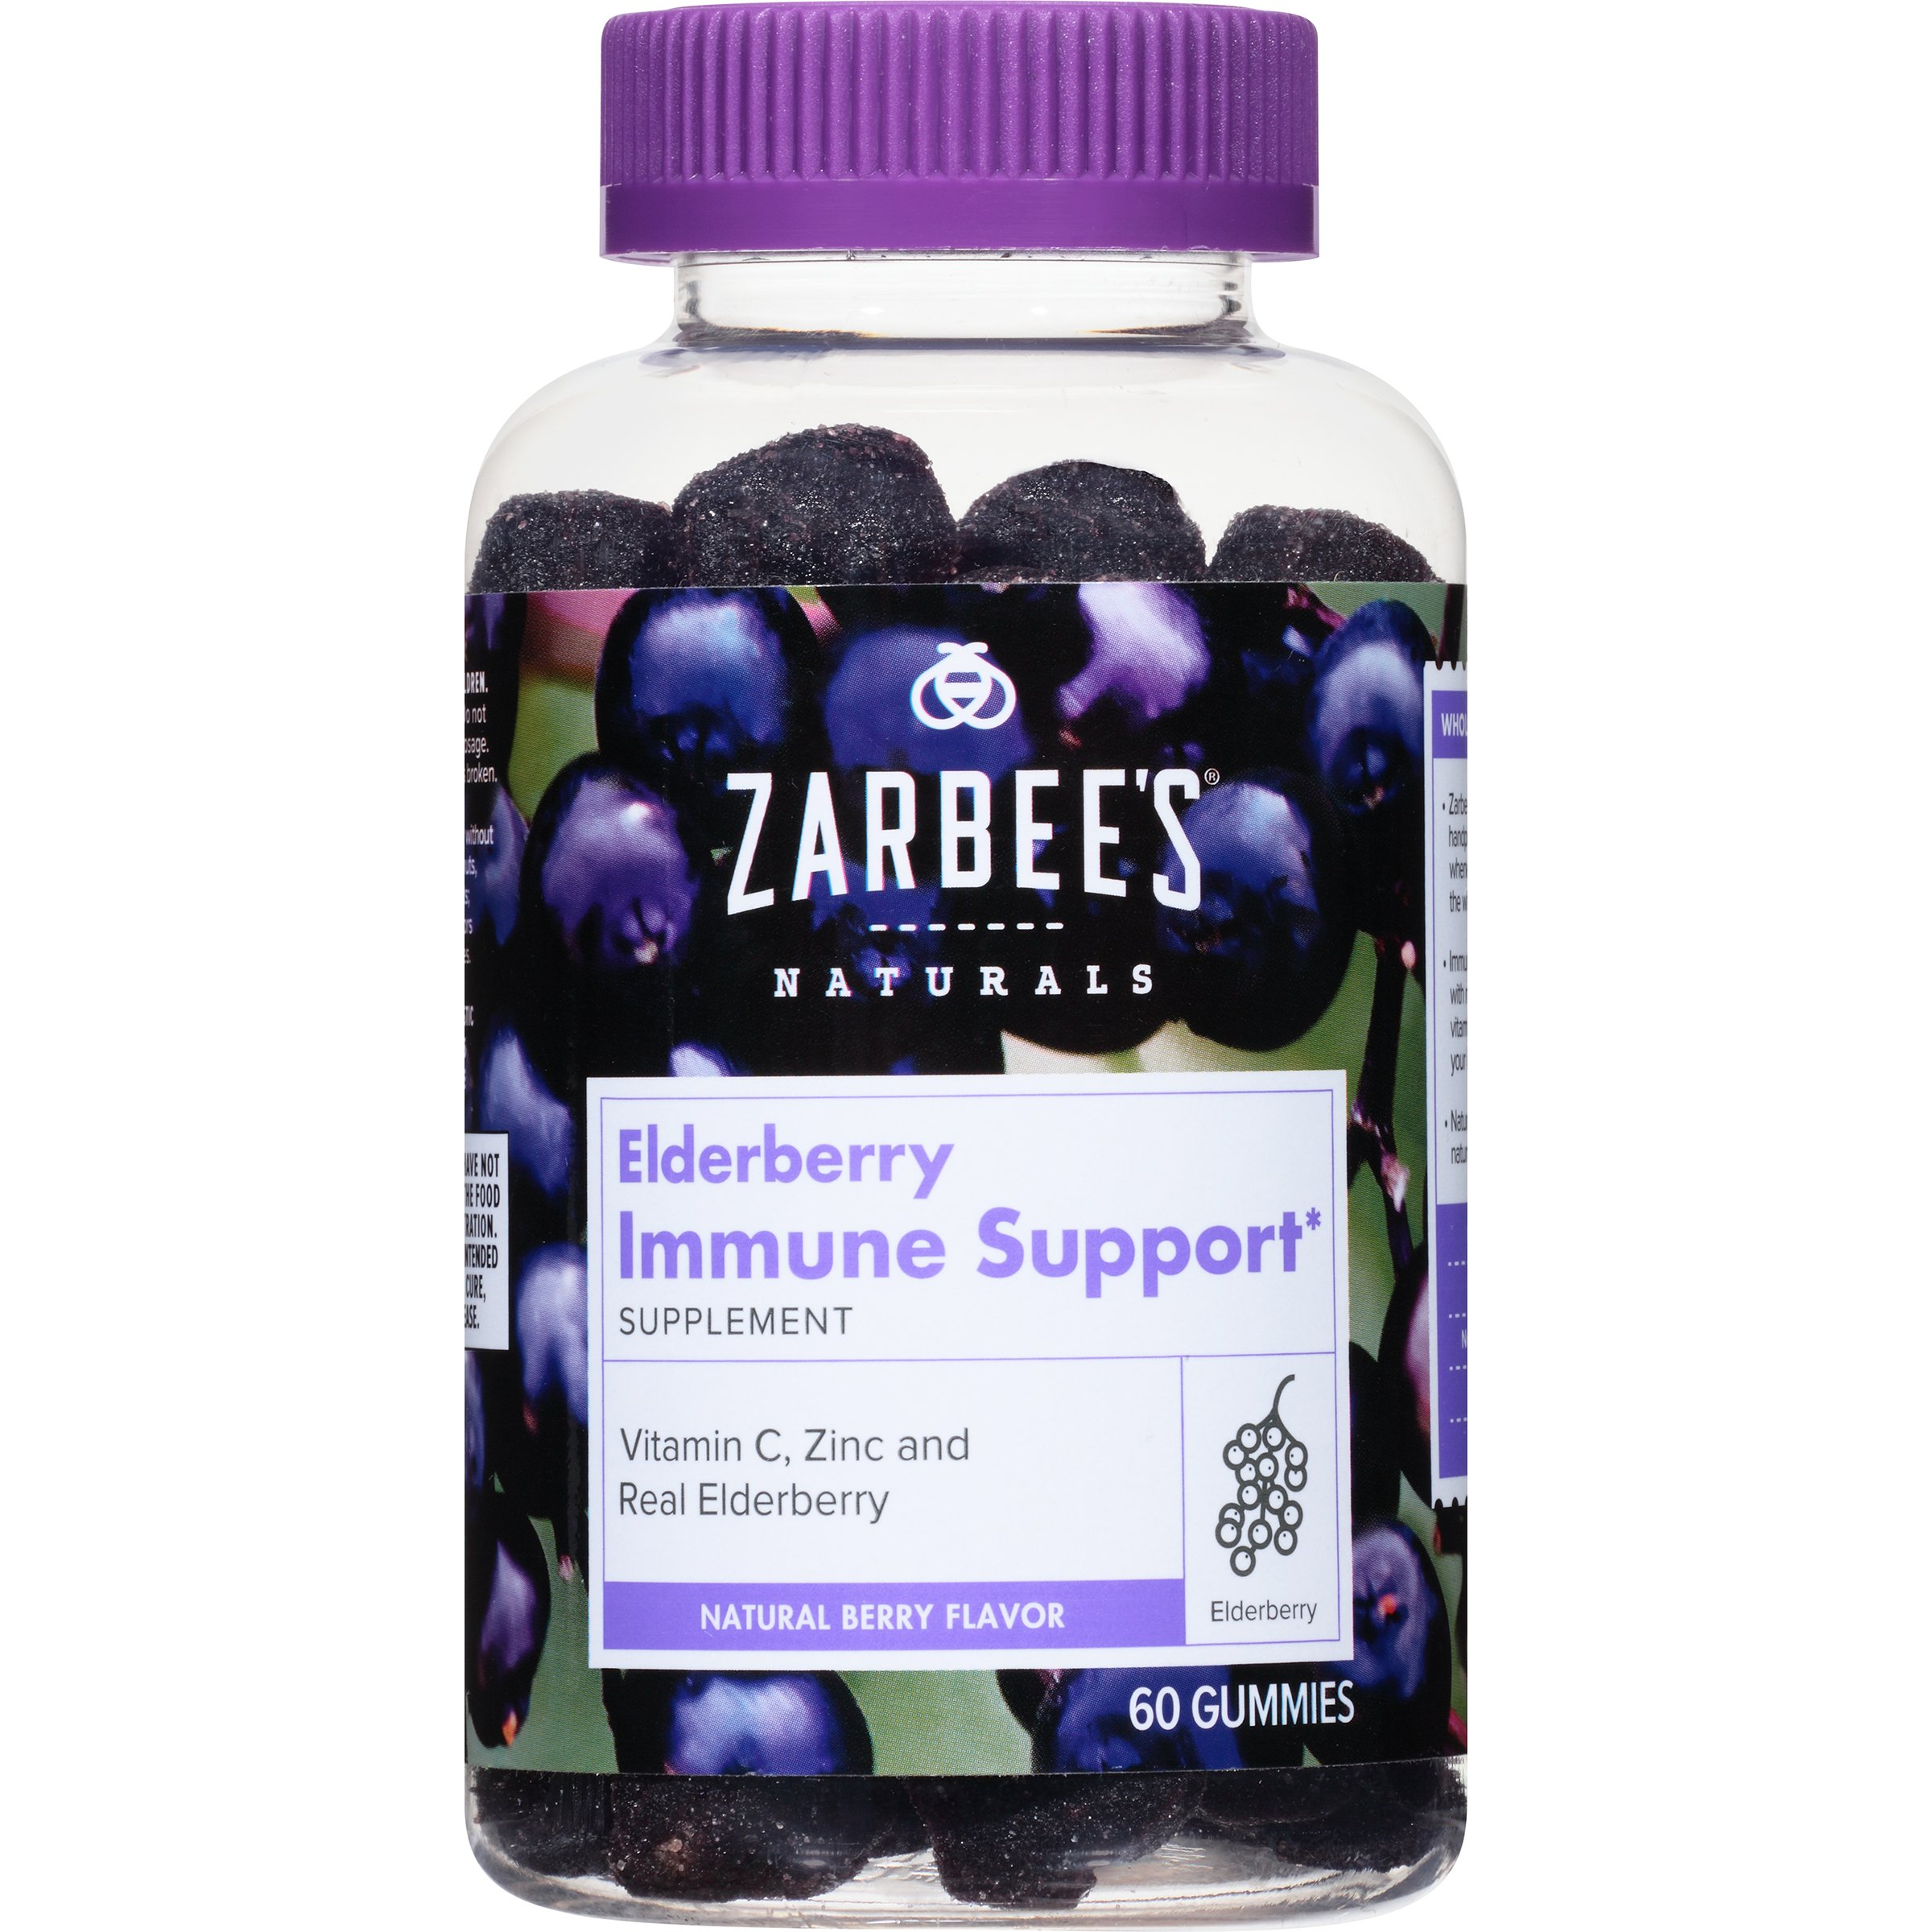 Zarbee's Naturals Elderberry Immune Support* Gummies, With Vitamin C, Zinc & Real Elderberry, 60 Gummies (1 Bottle) Supports the Immune System*